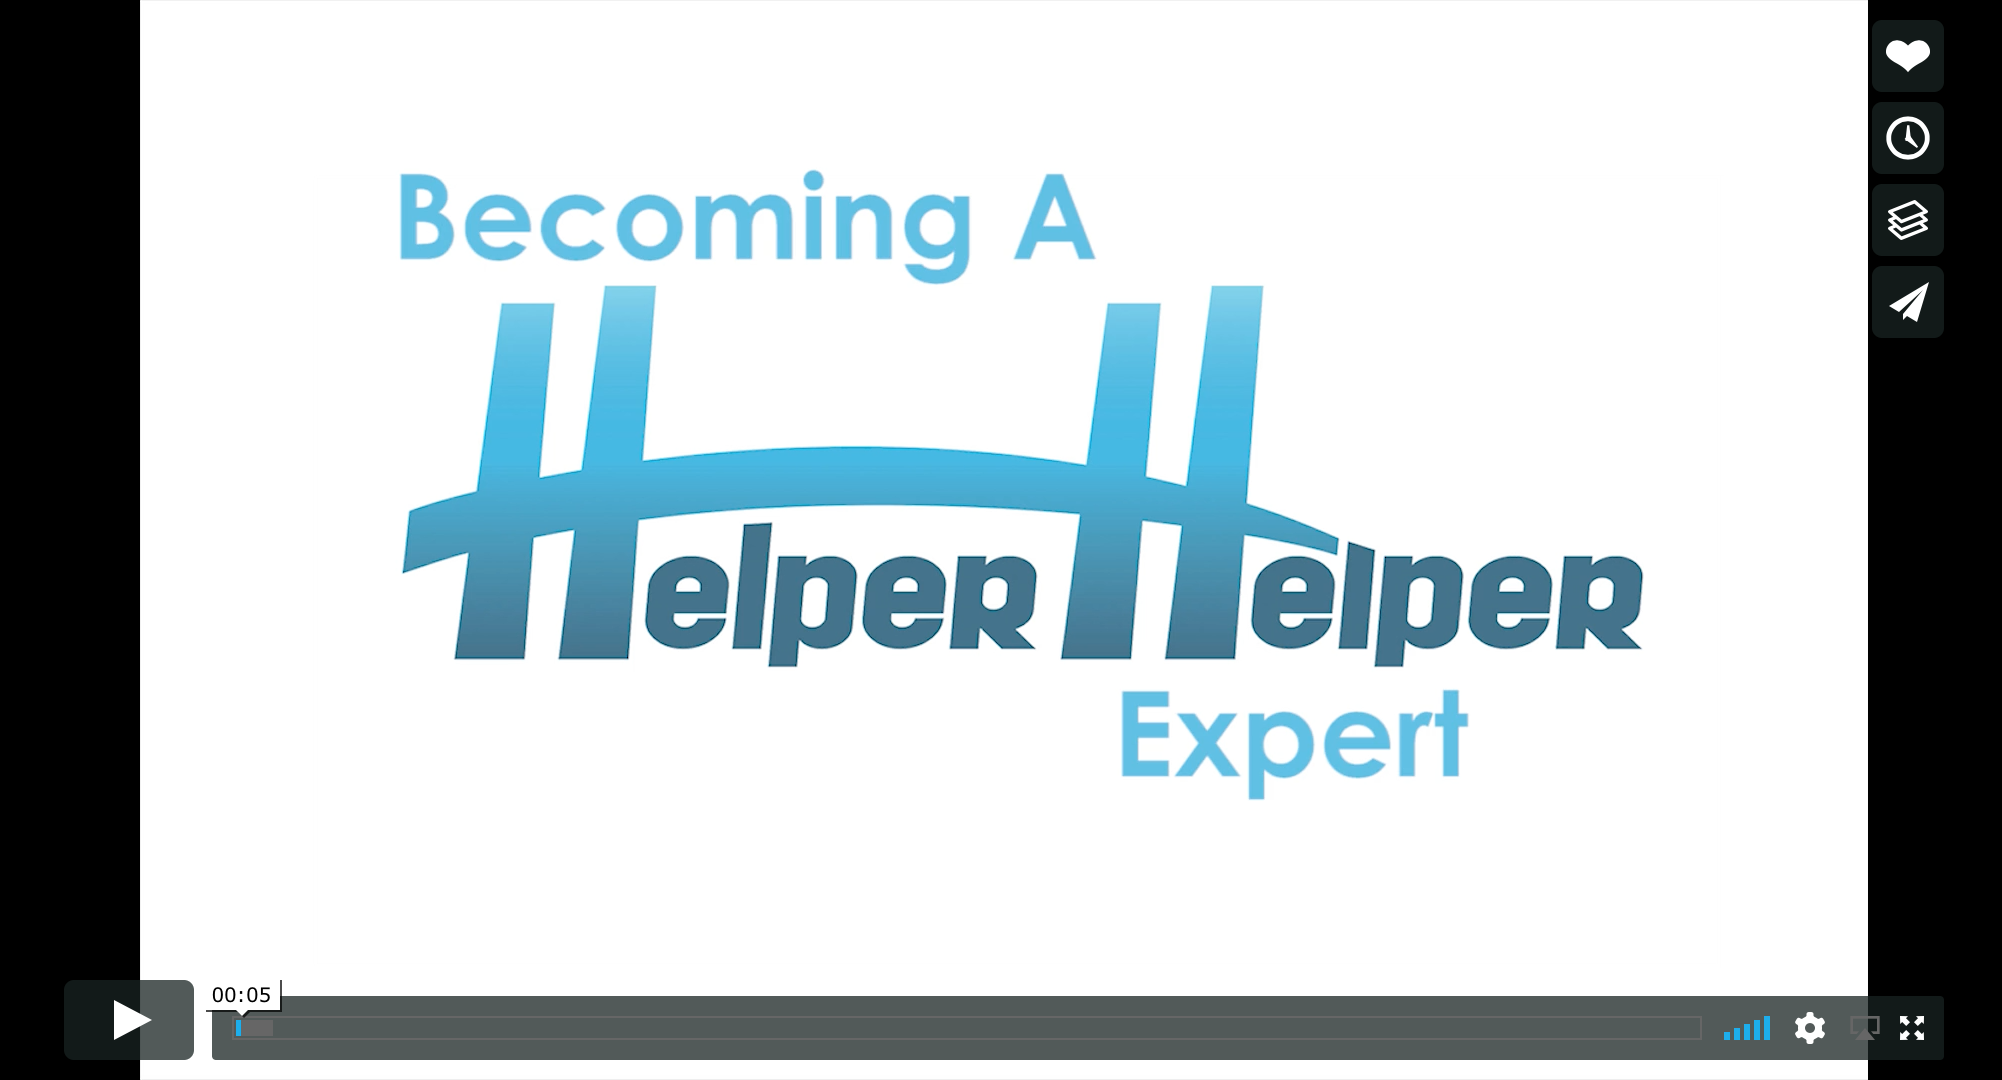 Becoming a Helper Helper Expert